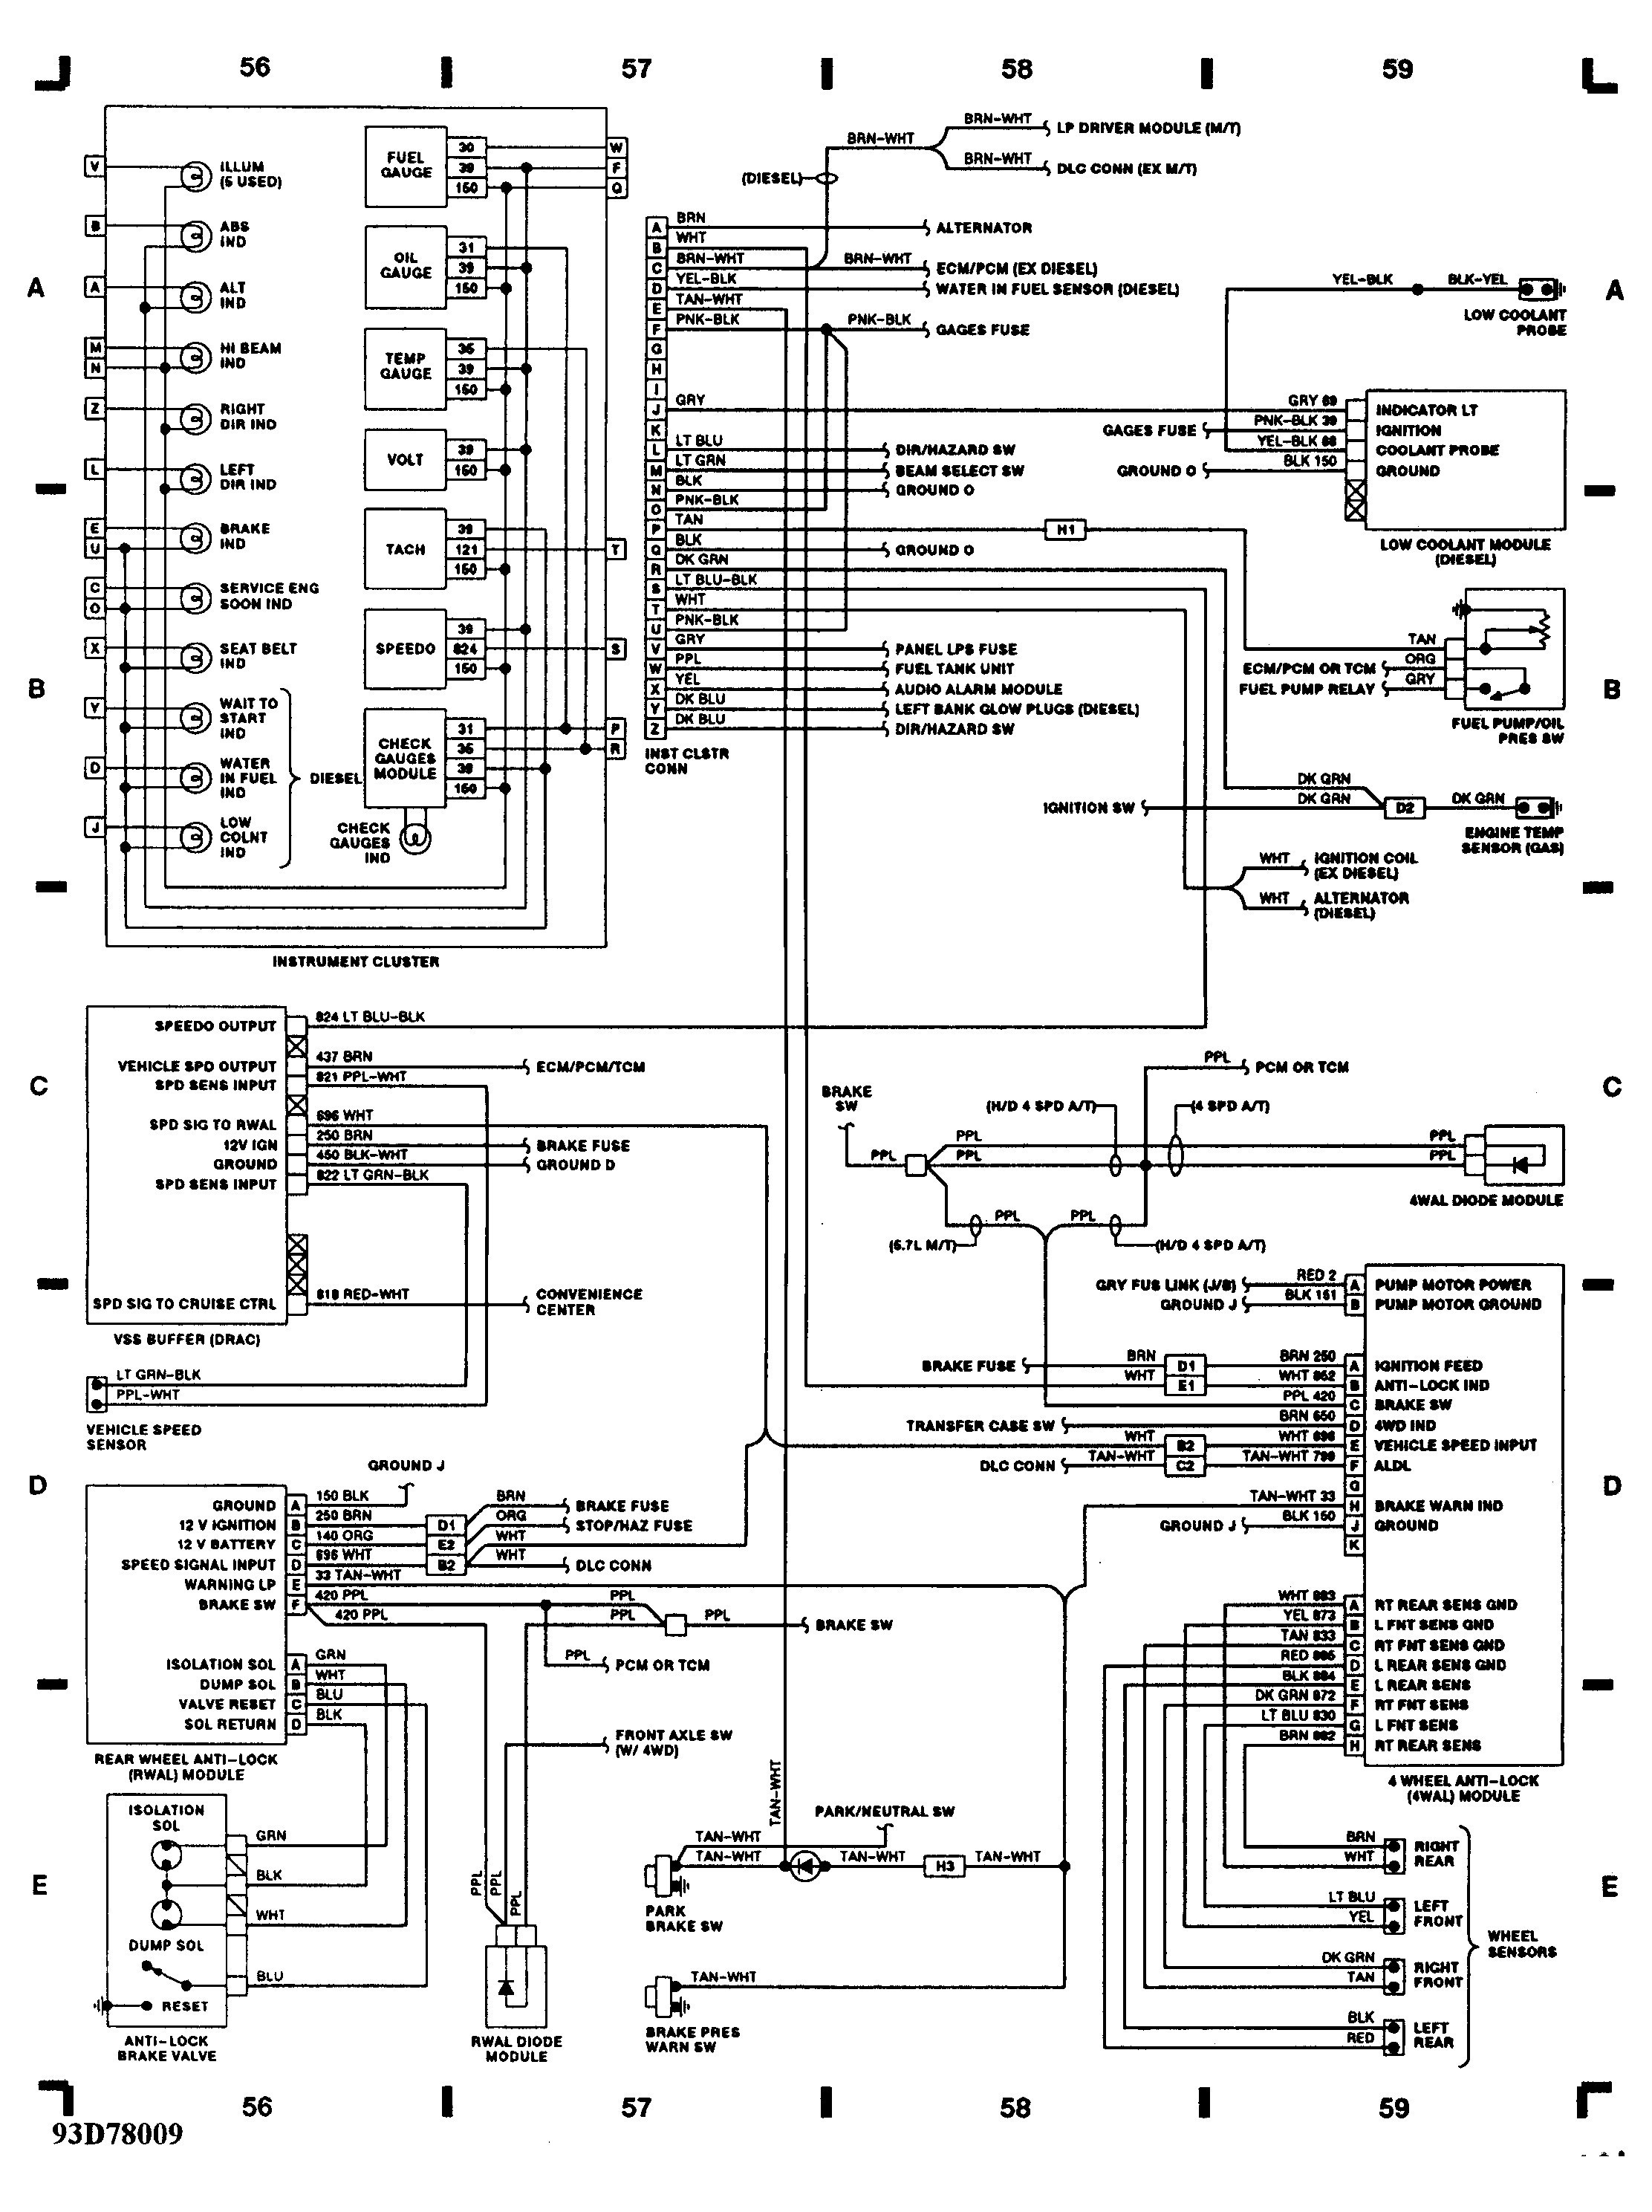 1993 Chevy Silverado Wiring Diagram Beautiful I Have A 93 Silverado with Od Automatic Transmission and 5 7 L